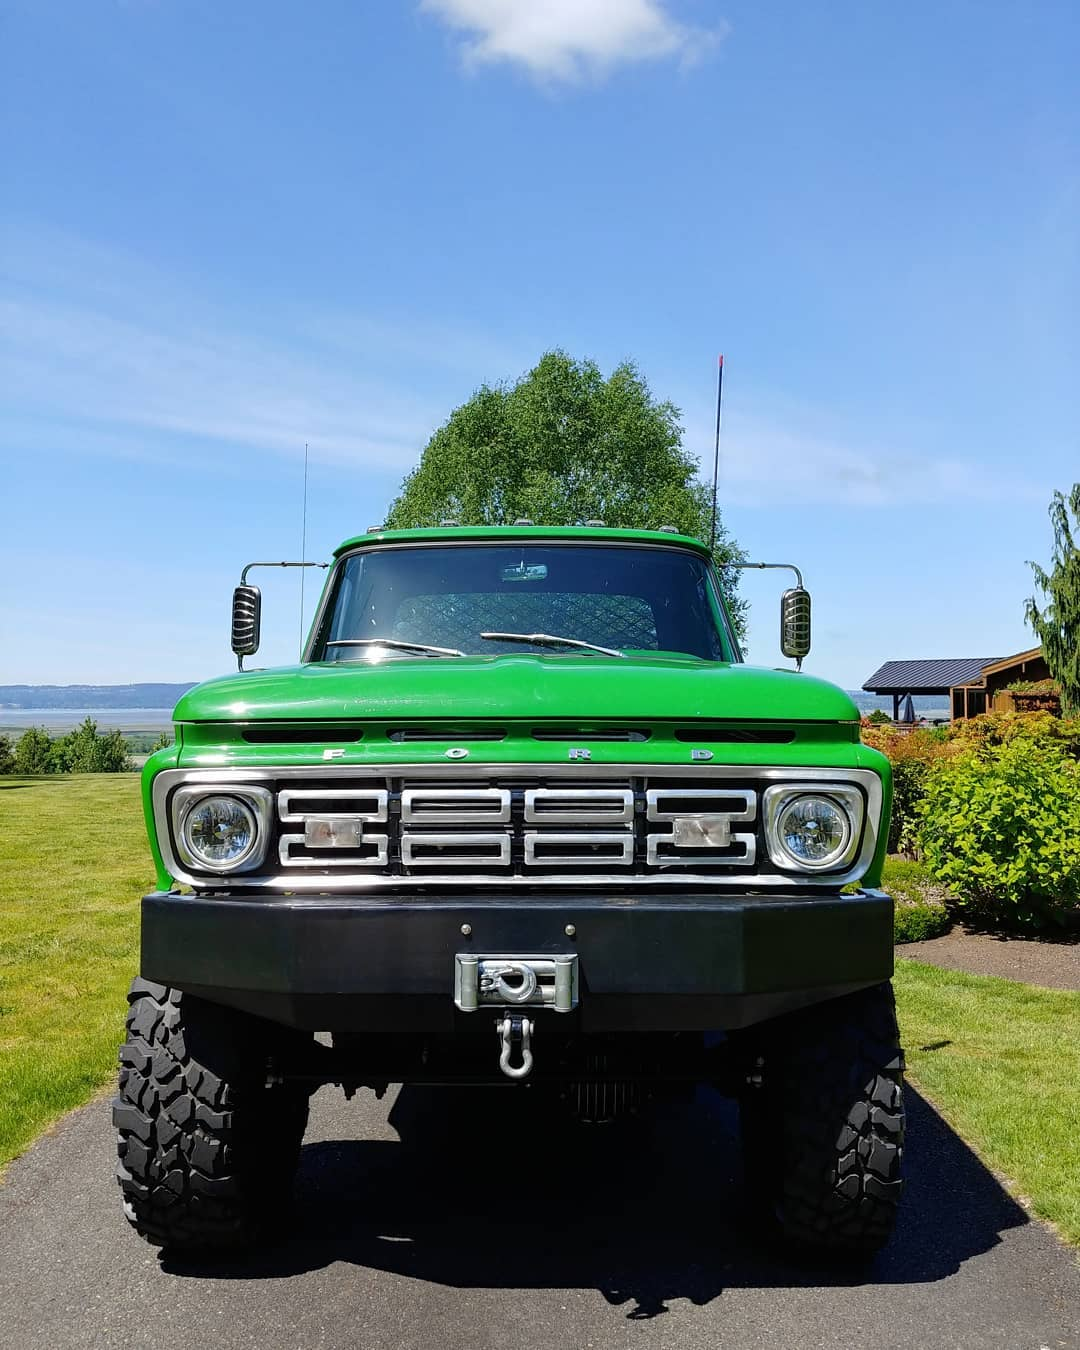 1965 Ford F100 With a 64 Grill On 41.5 Pitbull Tires 2.jpg